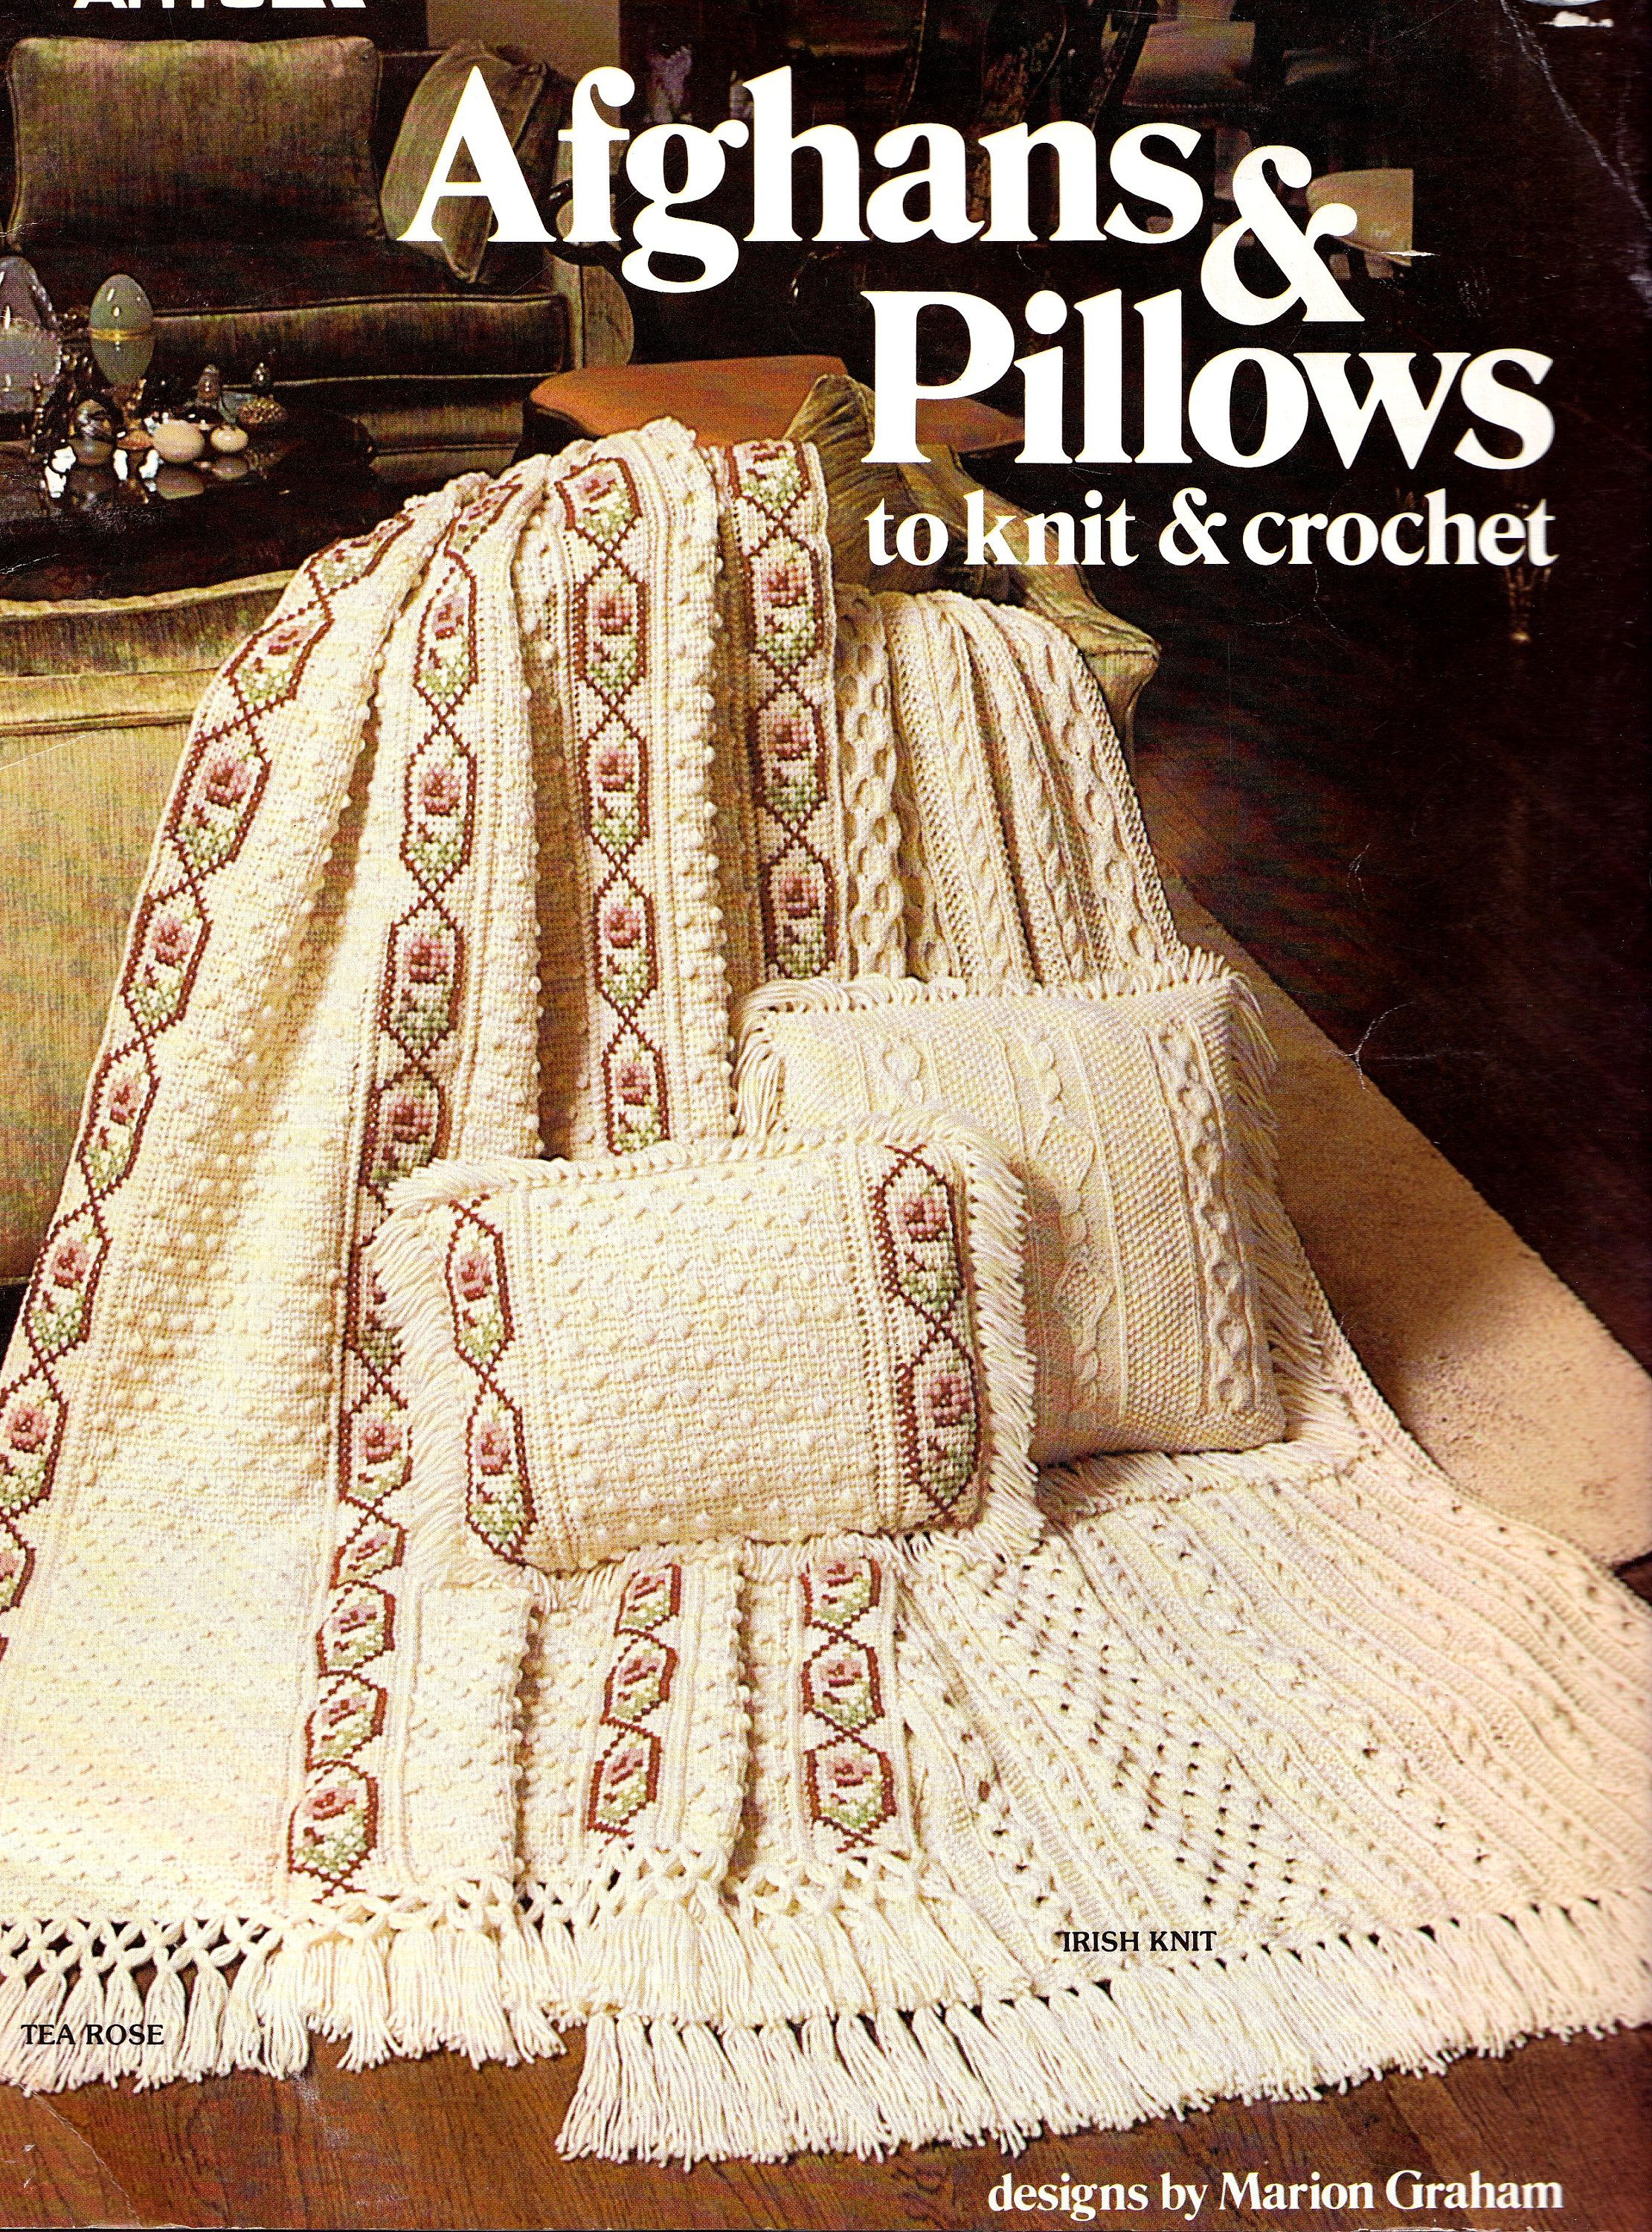 Afghans and Pillows to Knit and Crochet, Leisure Arts 149, Irish Knit  Afghan, Tea Rose Crochet Afghan, Sampler Afghan, Granny Squares by  OnceUponAnHeirloom ...